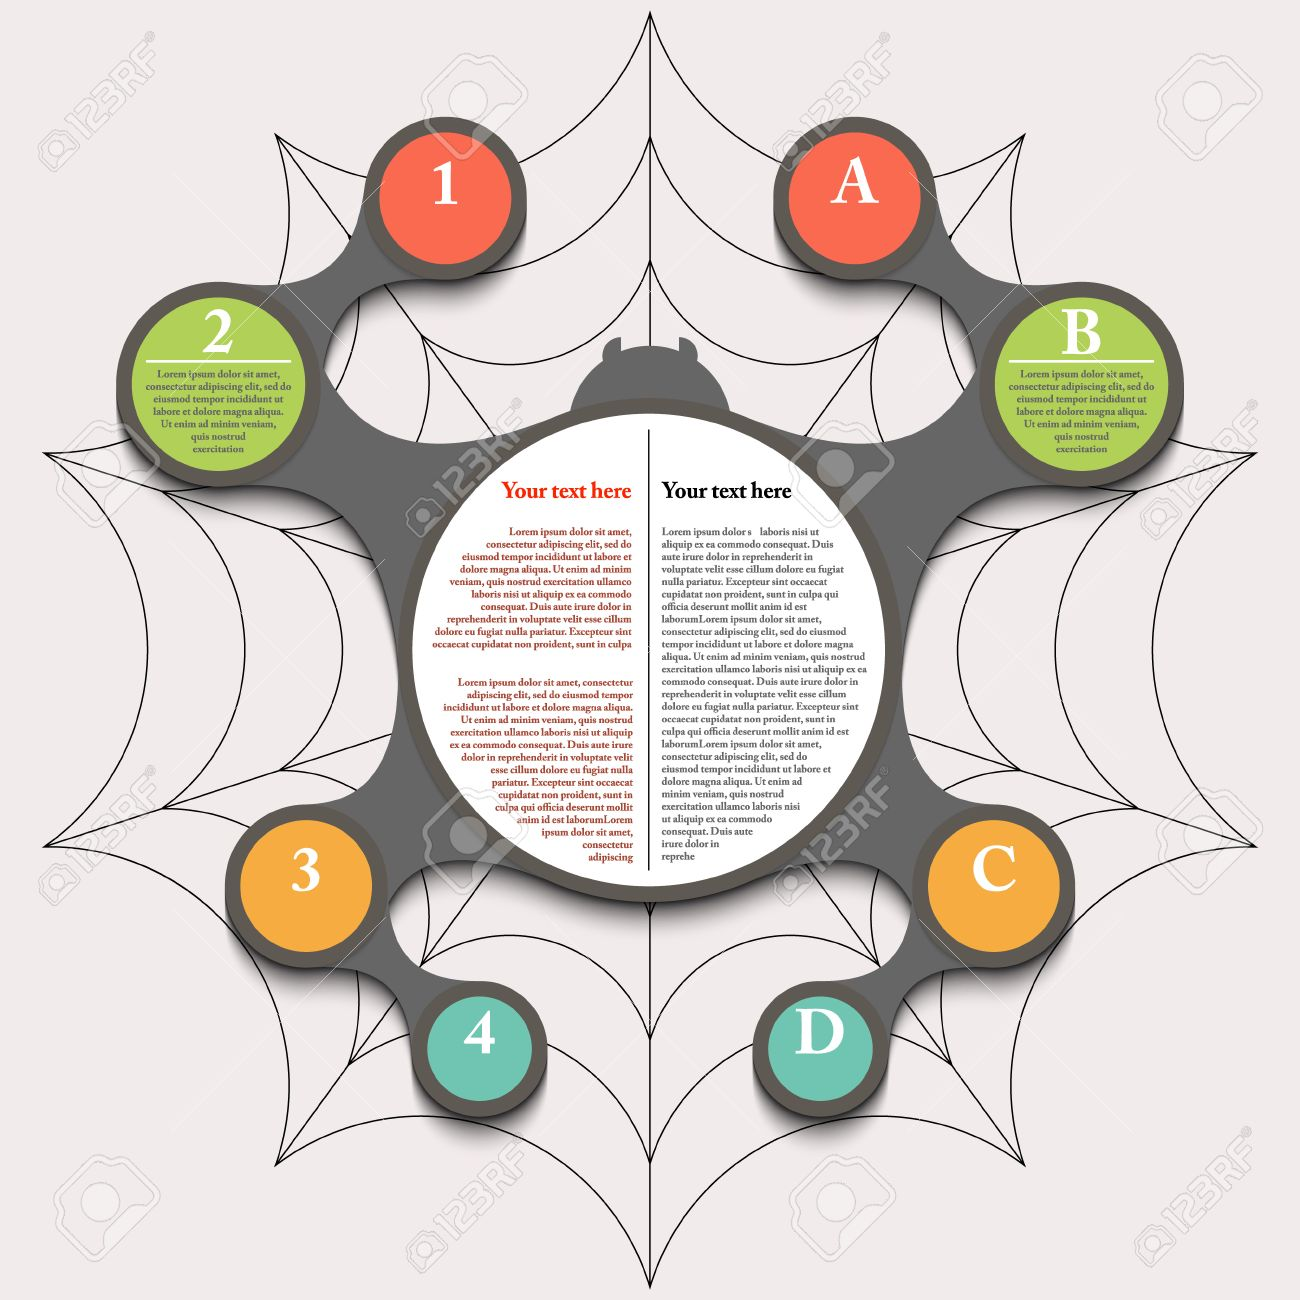 Spiderweb infographic timeline phased plan eps 10 royalty free spiderweb infographic timeline phased plan eps 10 stock vector 32915487 ccuart Choice Image